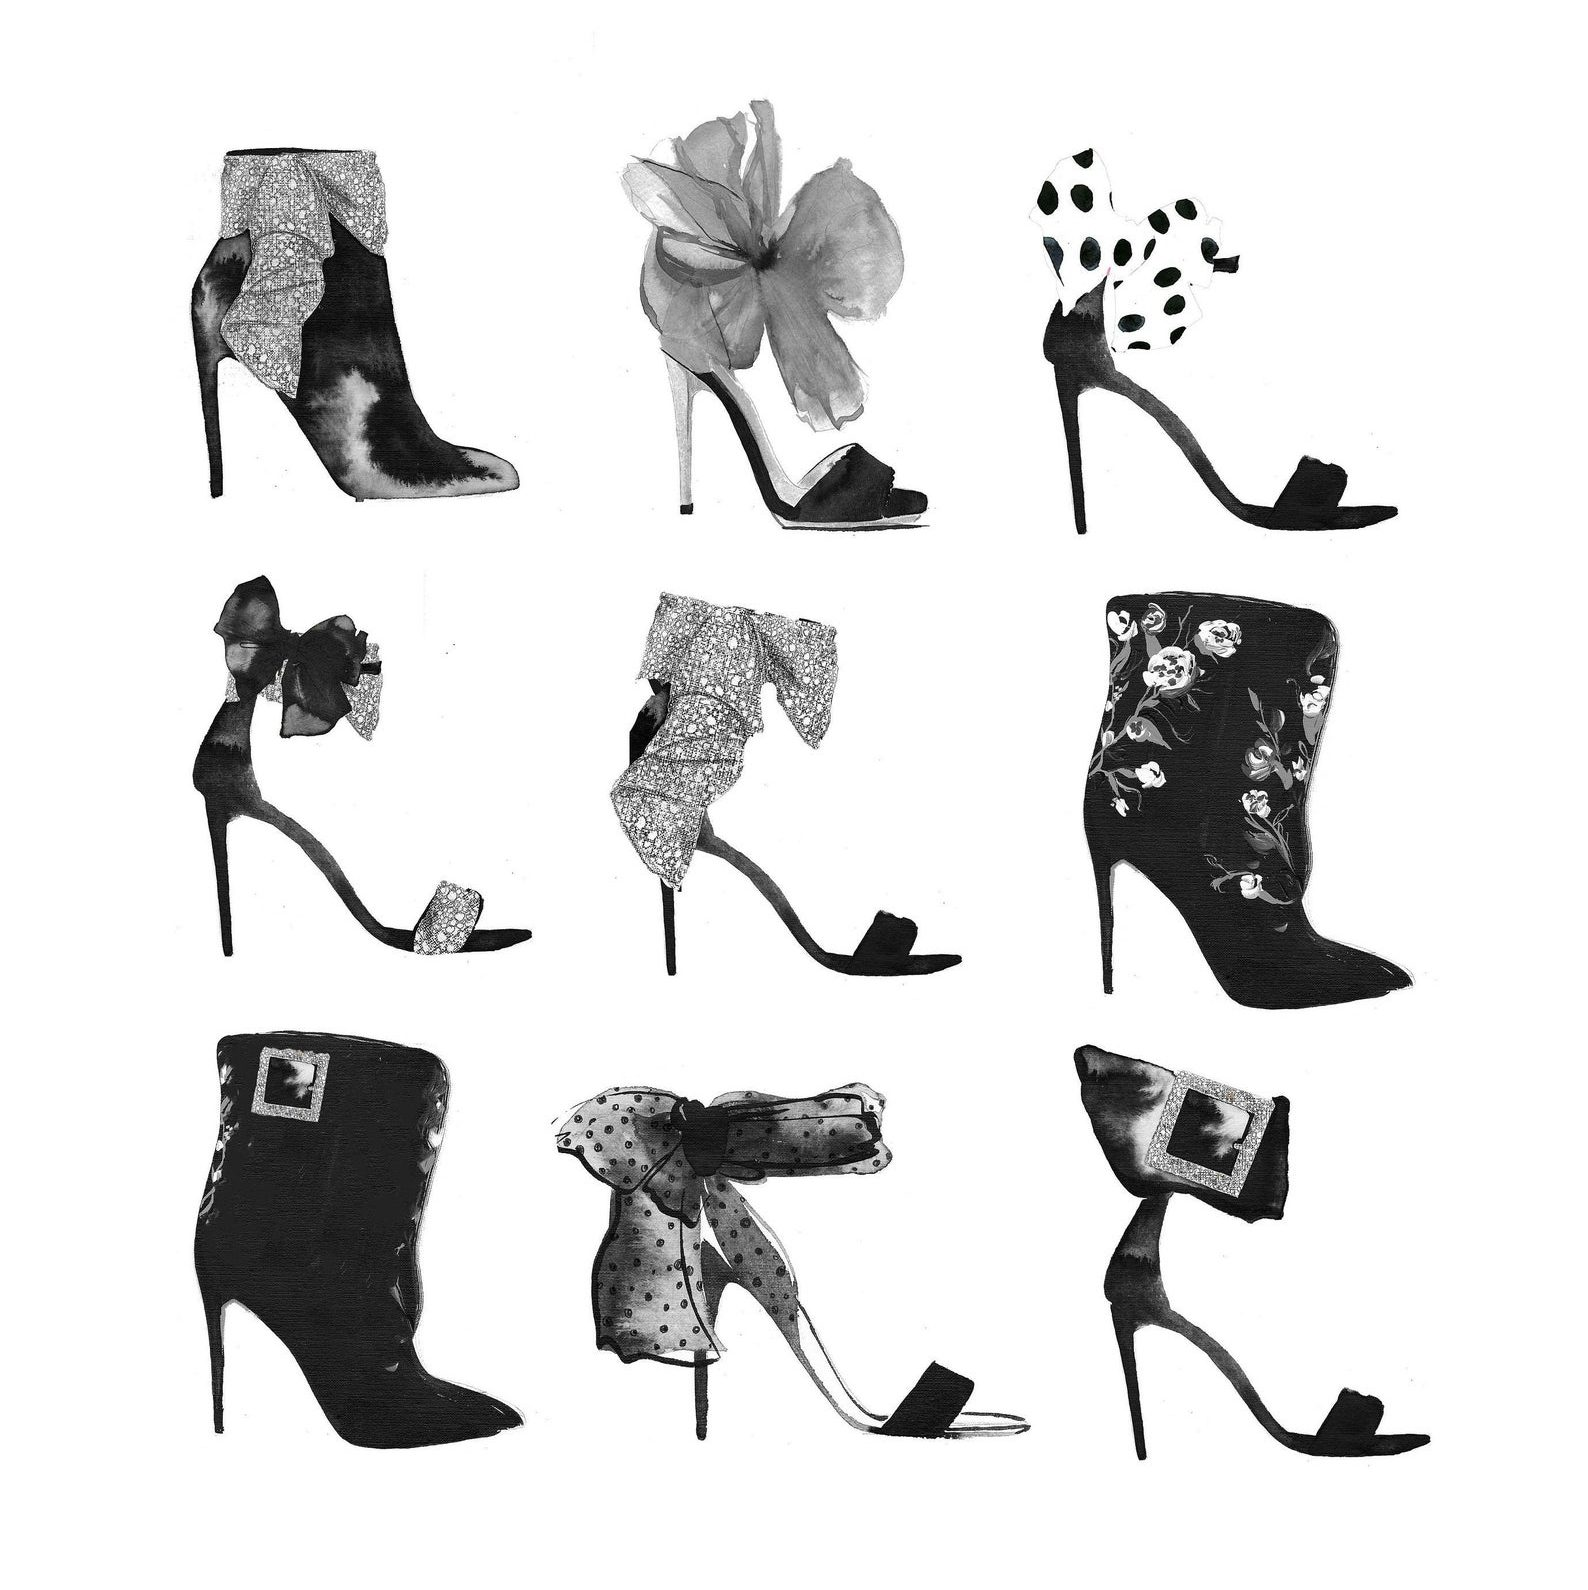 Shoe Heaven Illustration Print by Jessica Durant